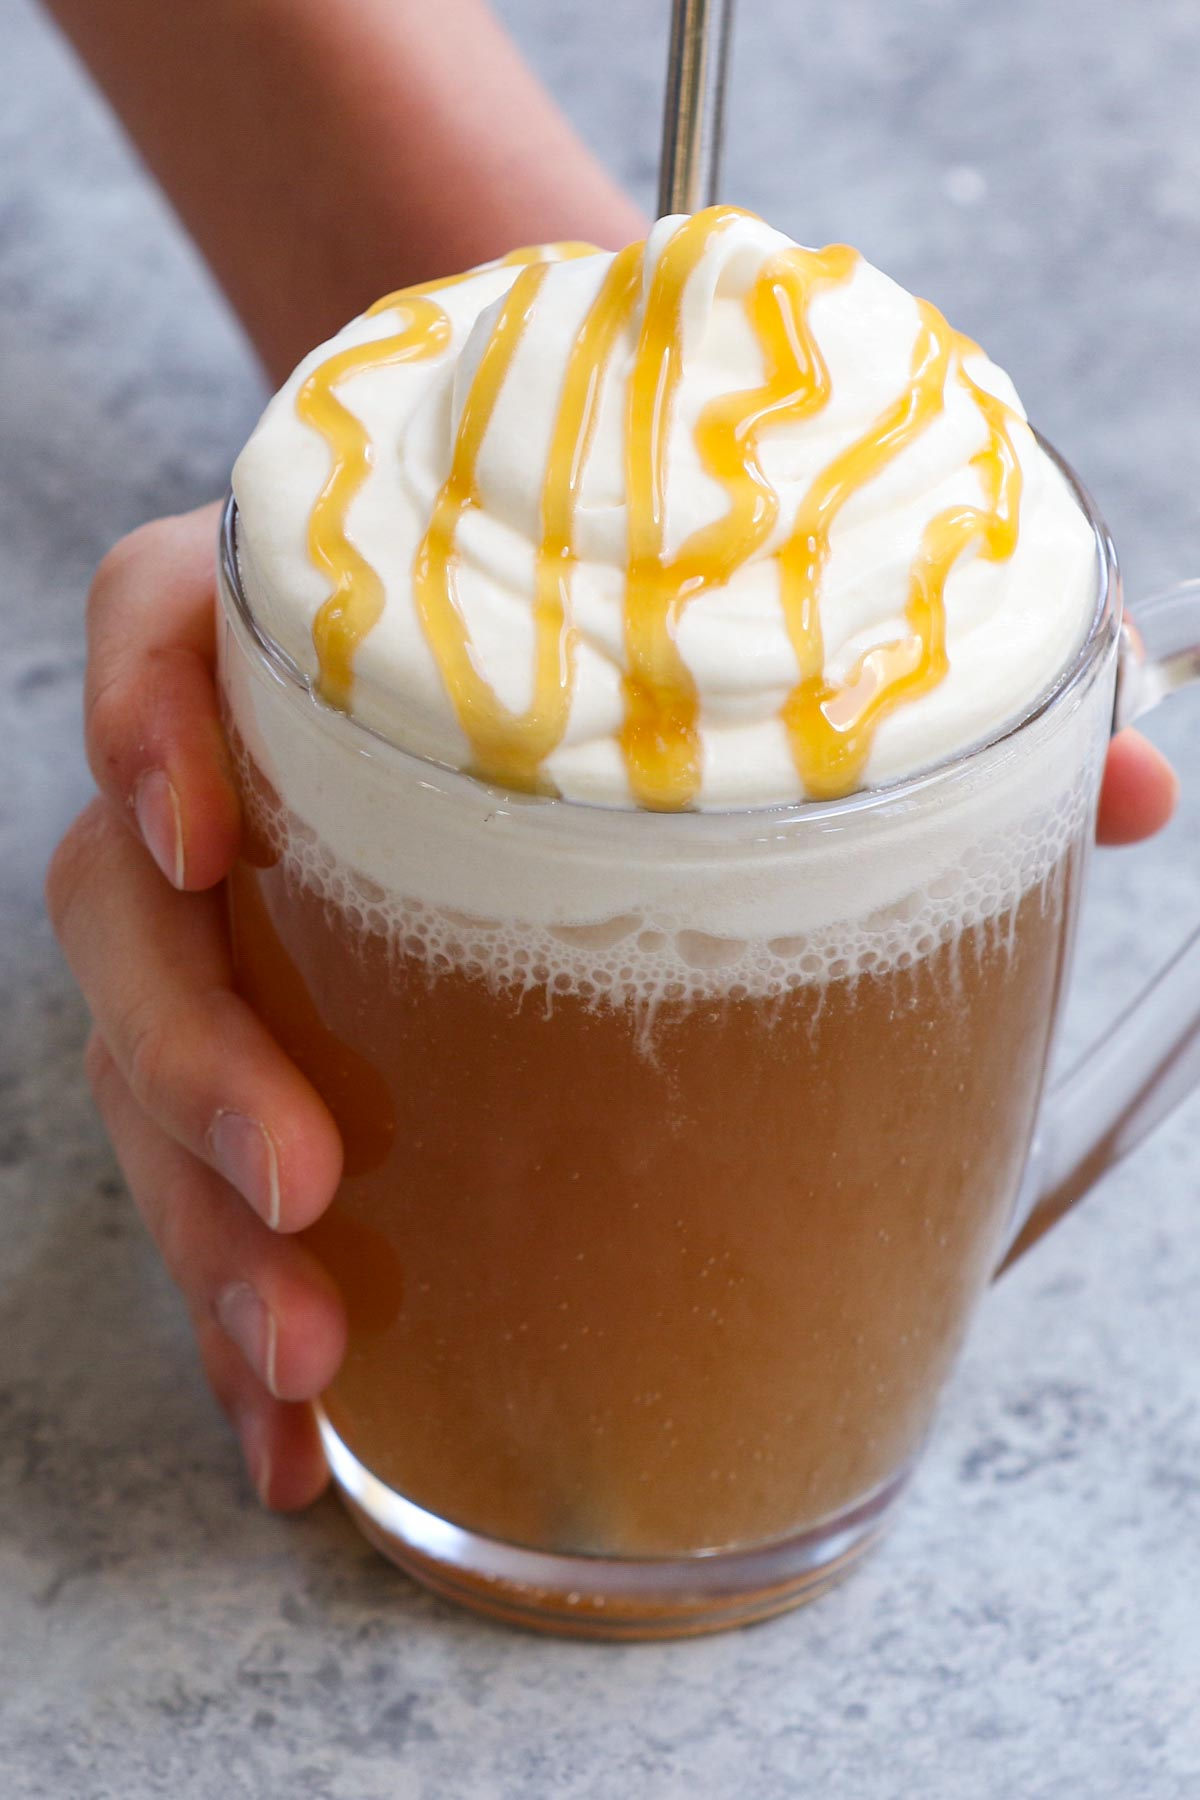 Add a little magic to your life with this recipe straight out of the Wizarding World. Contrary to what the name might imply, this Harry Potter Butterbeer is non-alcoholic, making it the perfect fun treat for the whole family to enjoy. It's made from cream soda topped with a butterscotch whipped cream and can be prepared in just a few minutes...almost like magic.